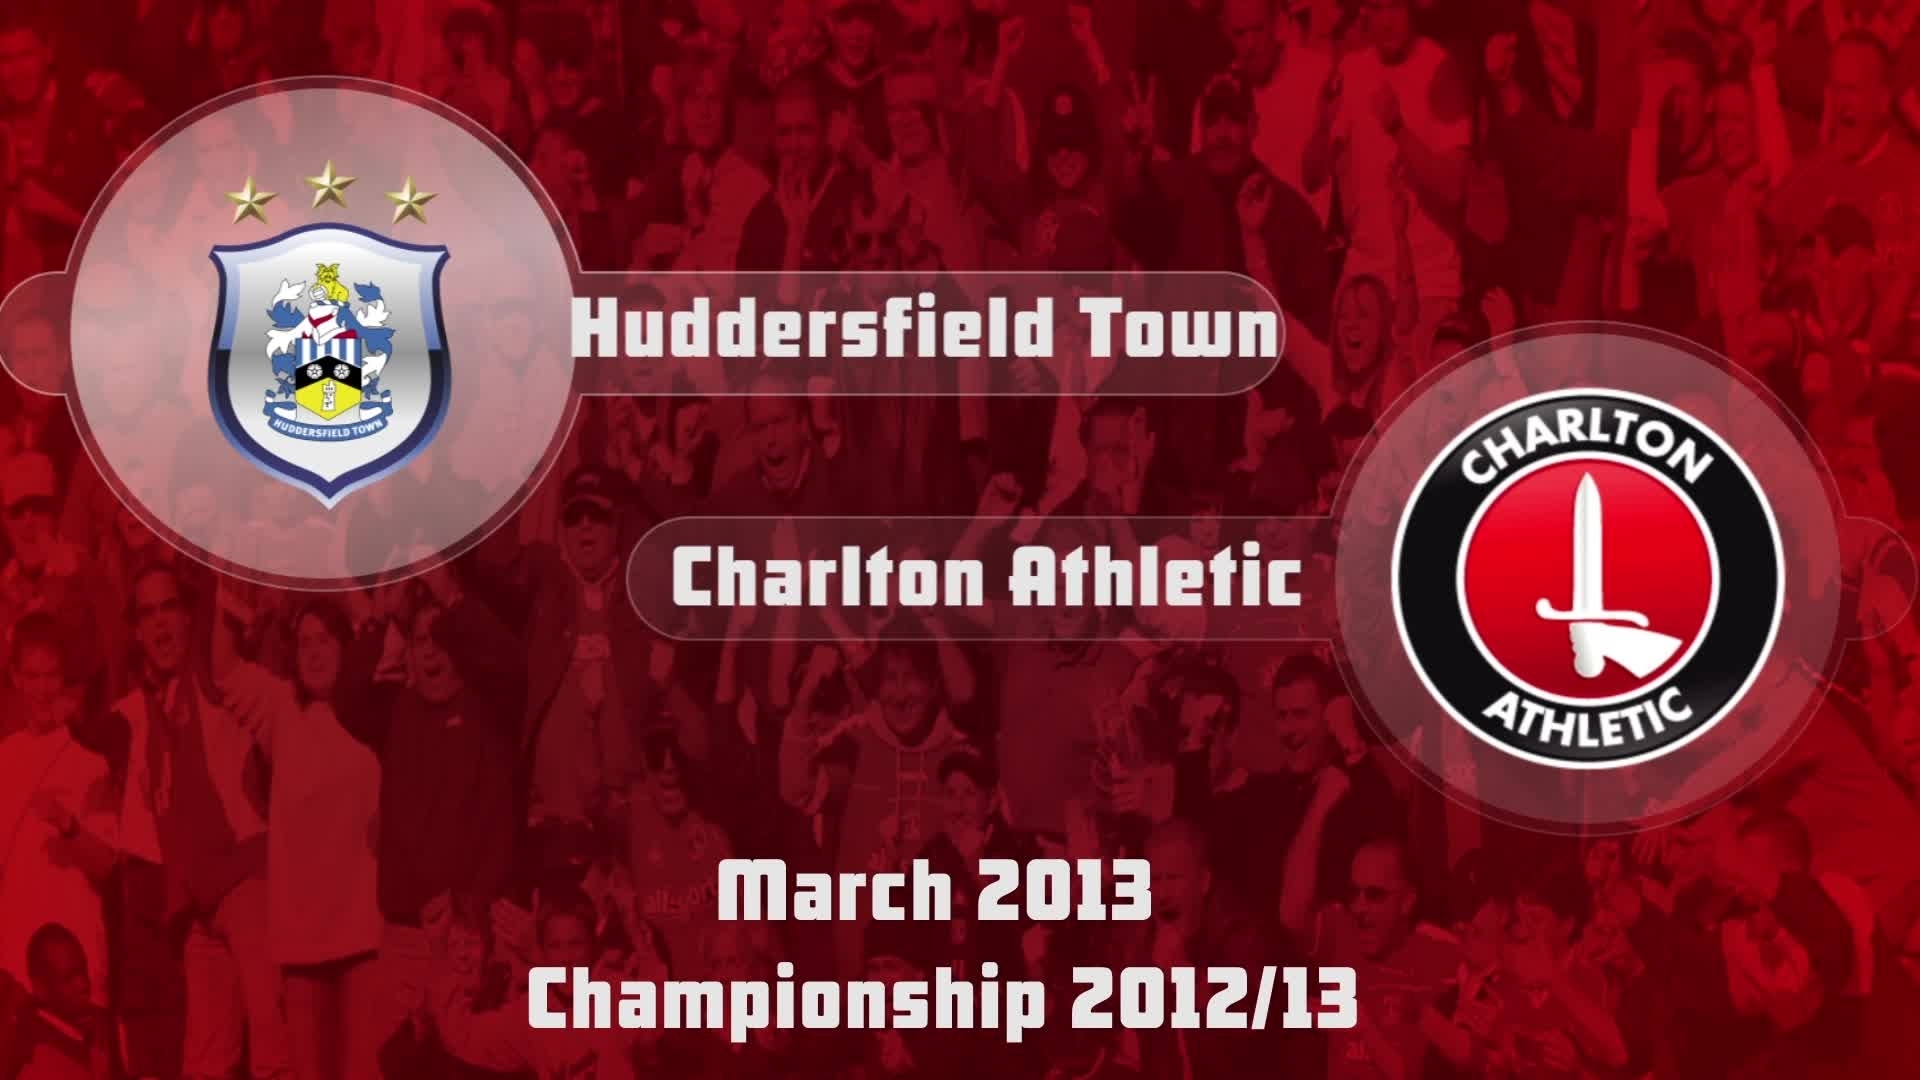 39 HIGHLIGHTS | Huddesfield 0 Charlton 1 (March 2013)